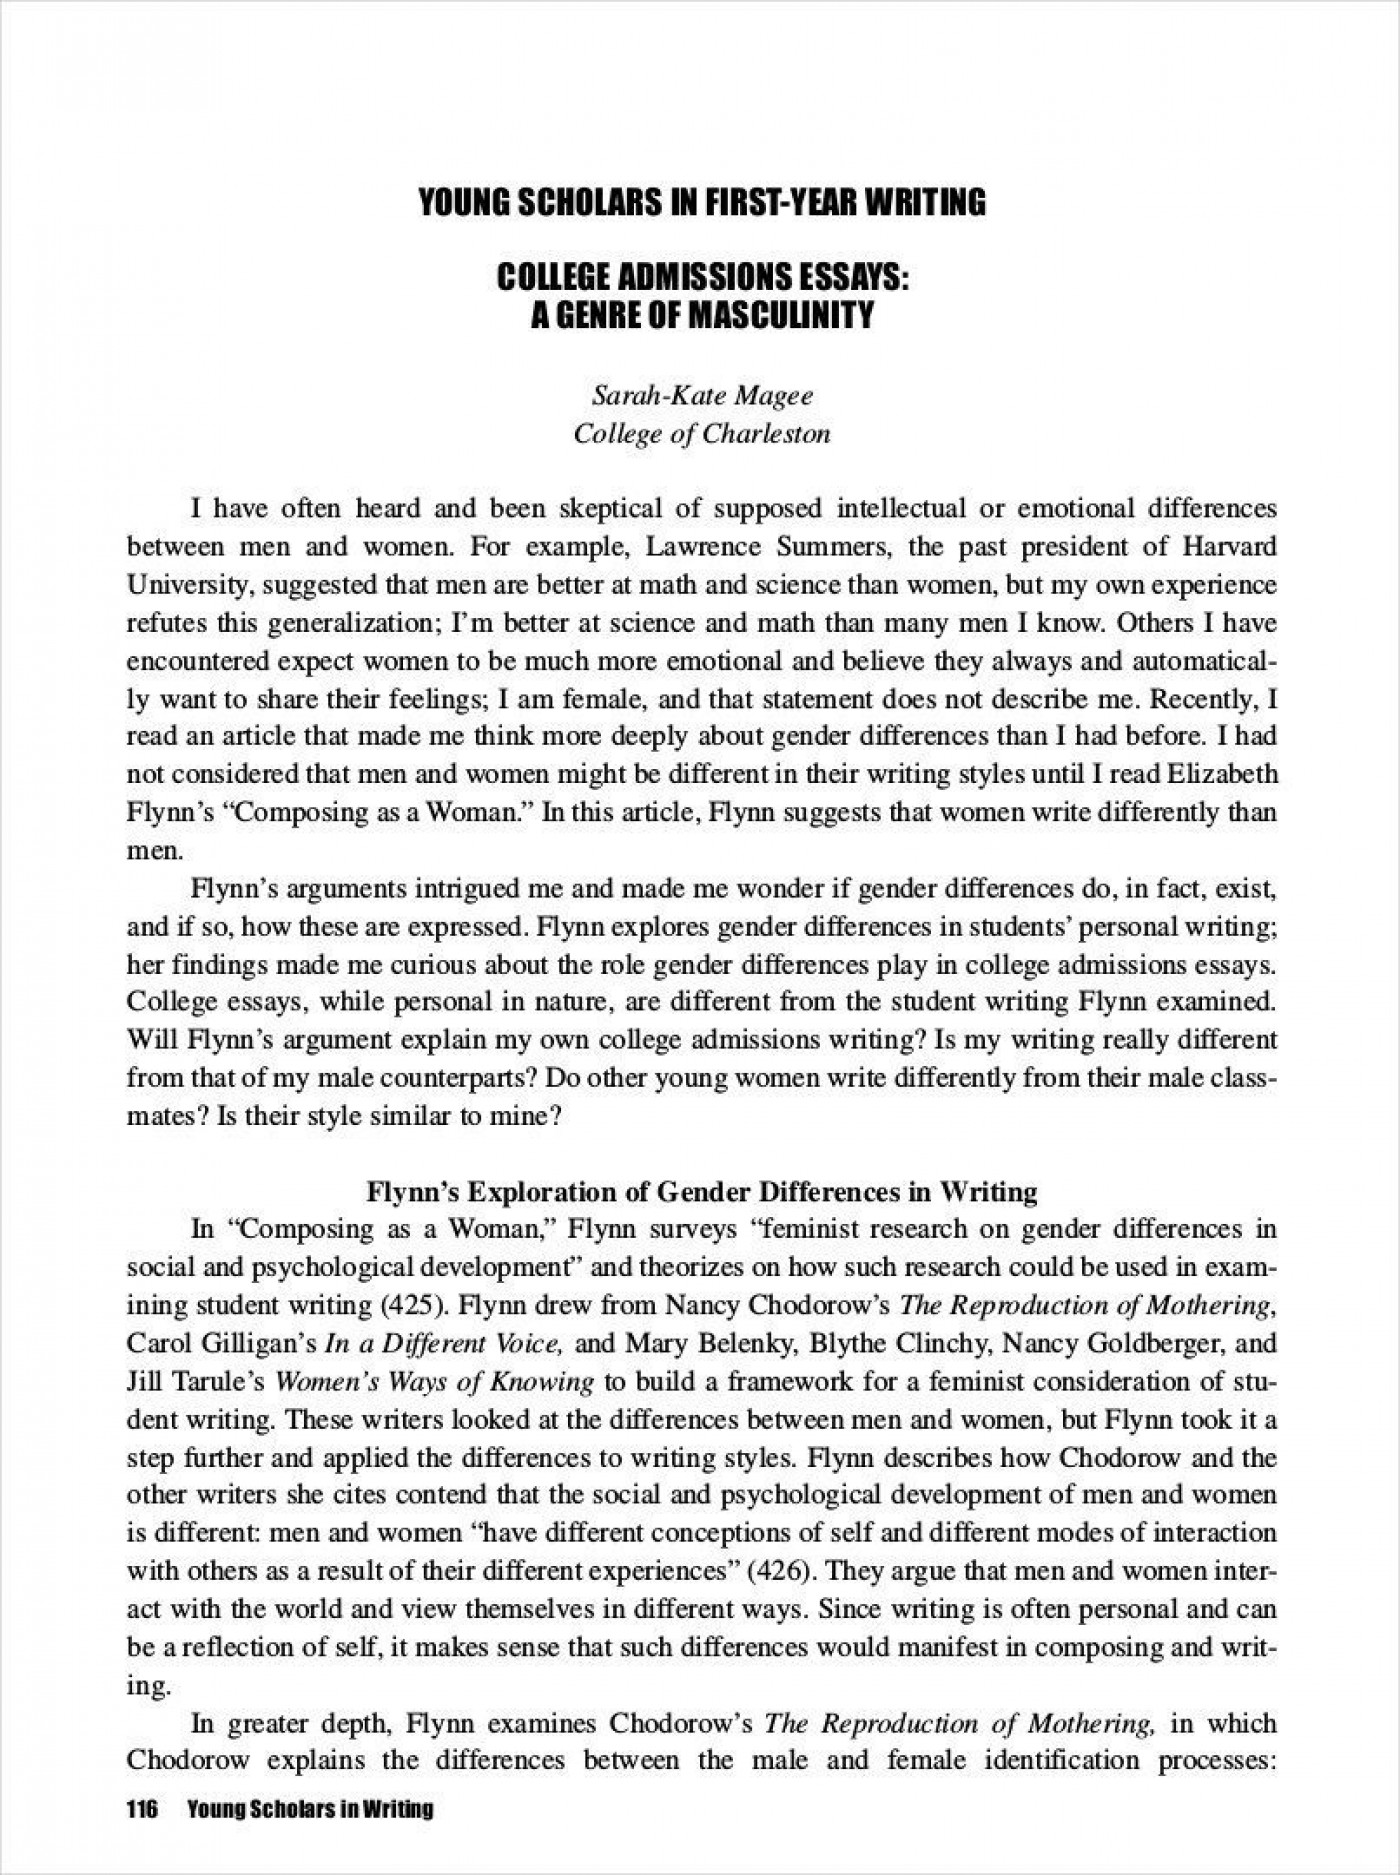 008 Unusual College Application Essay Outline Example Concept  Admission Format Heading Narrative Template1400